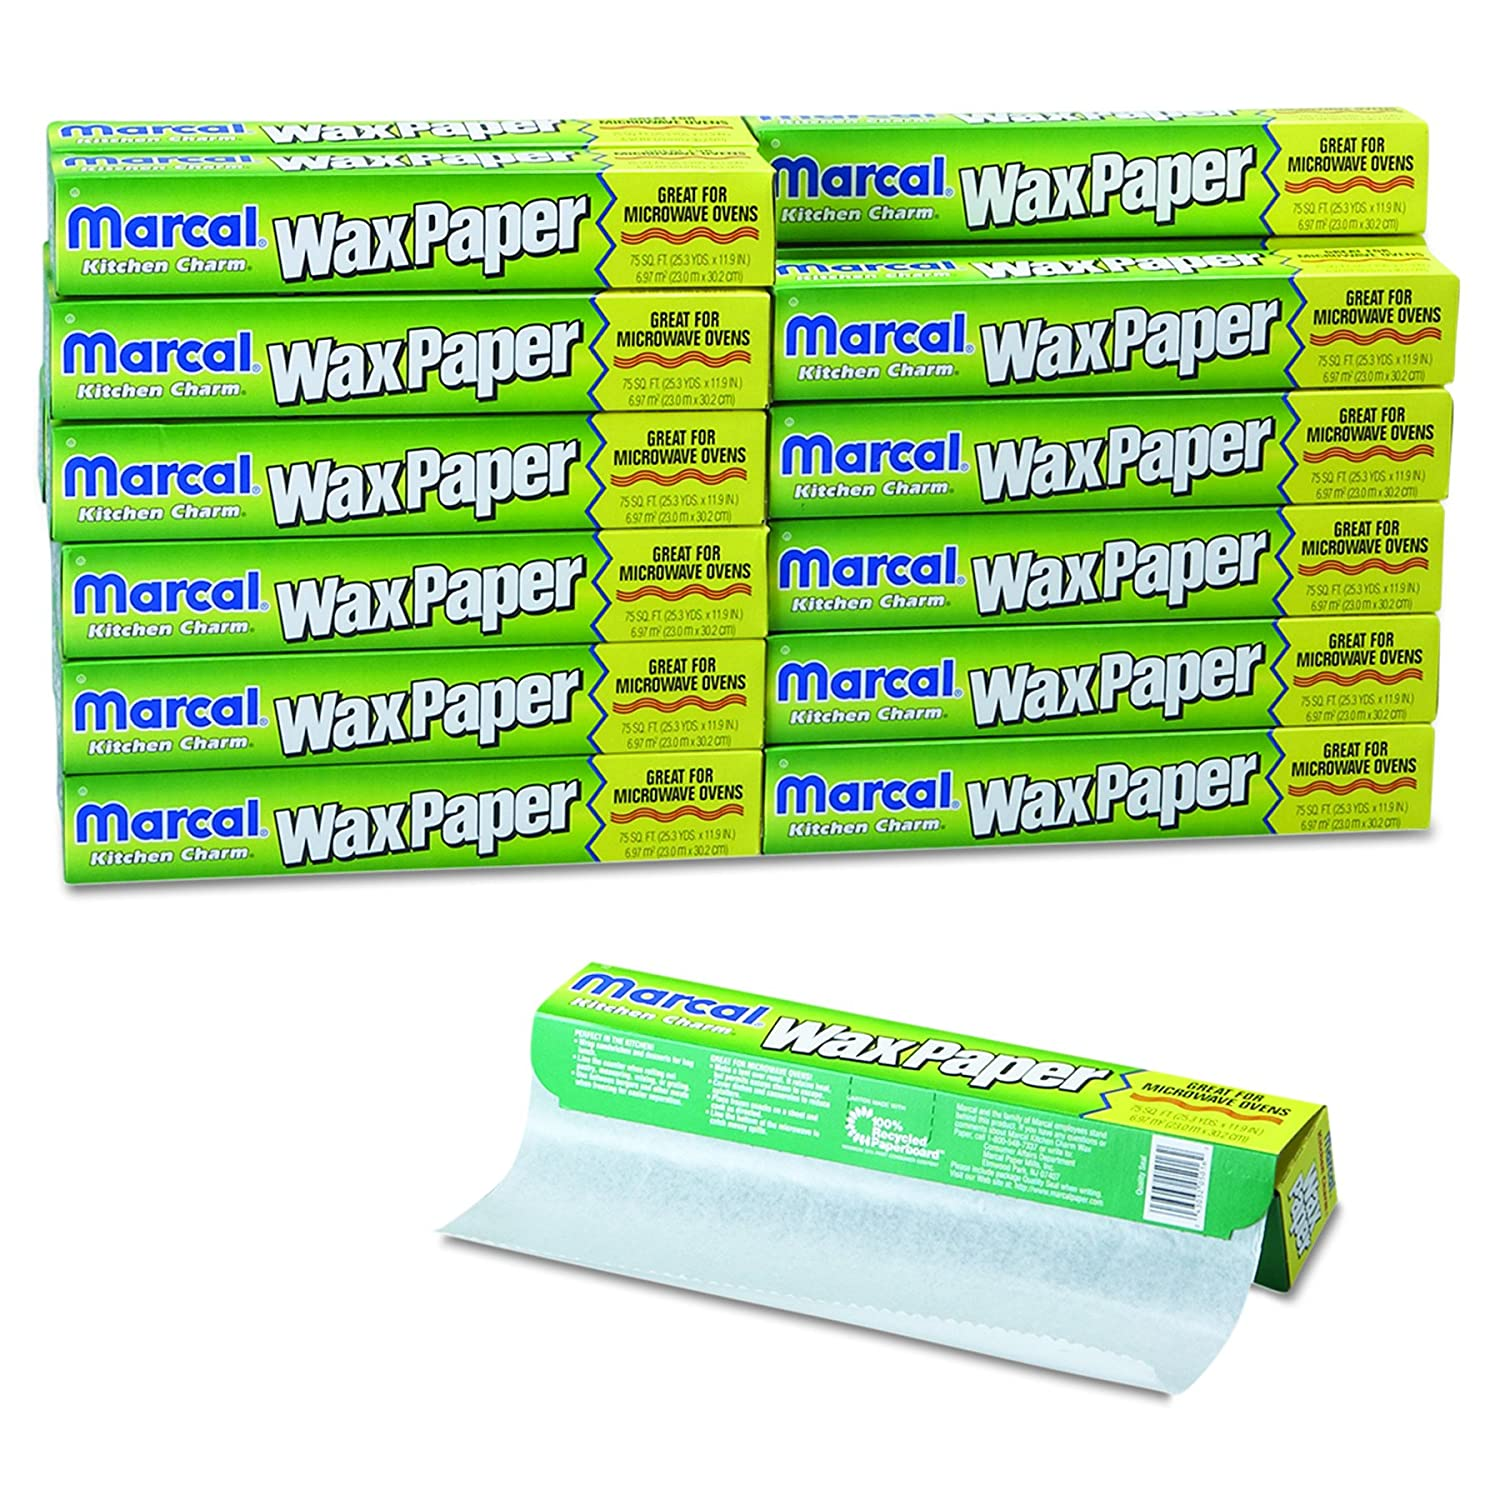 11 9//10 x 75ft Marcal 5016 Kitchen Charm Wax Paper Roll White Case of 24